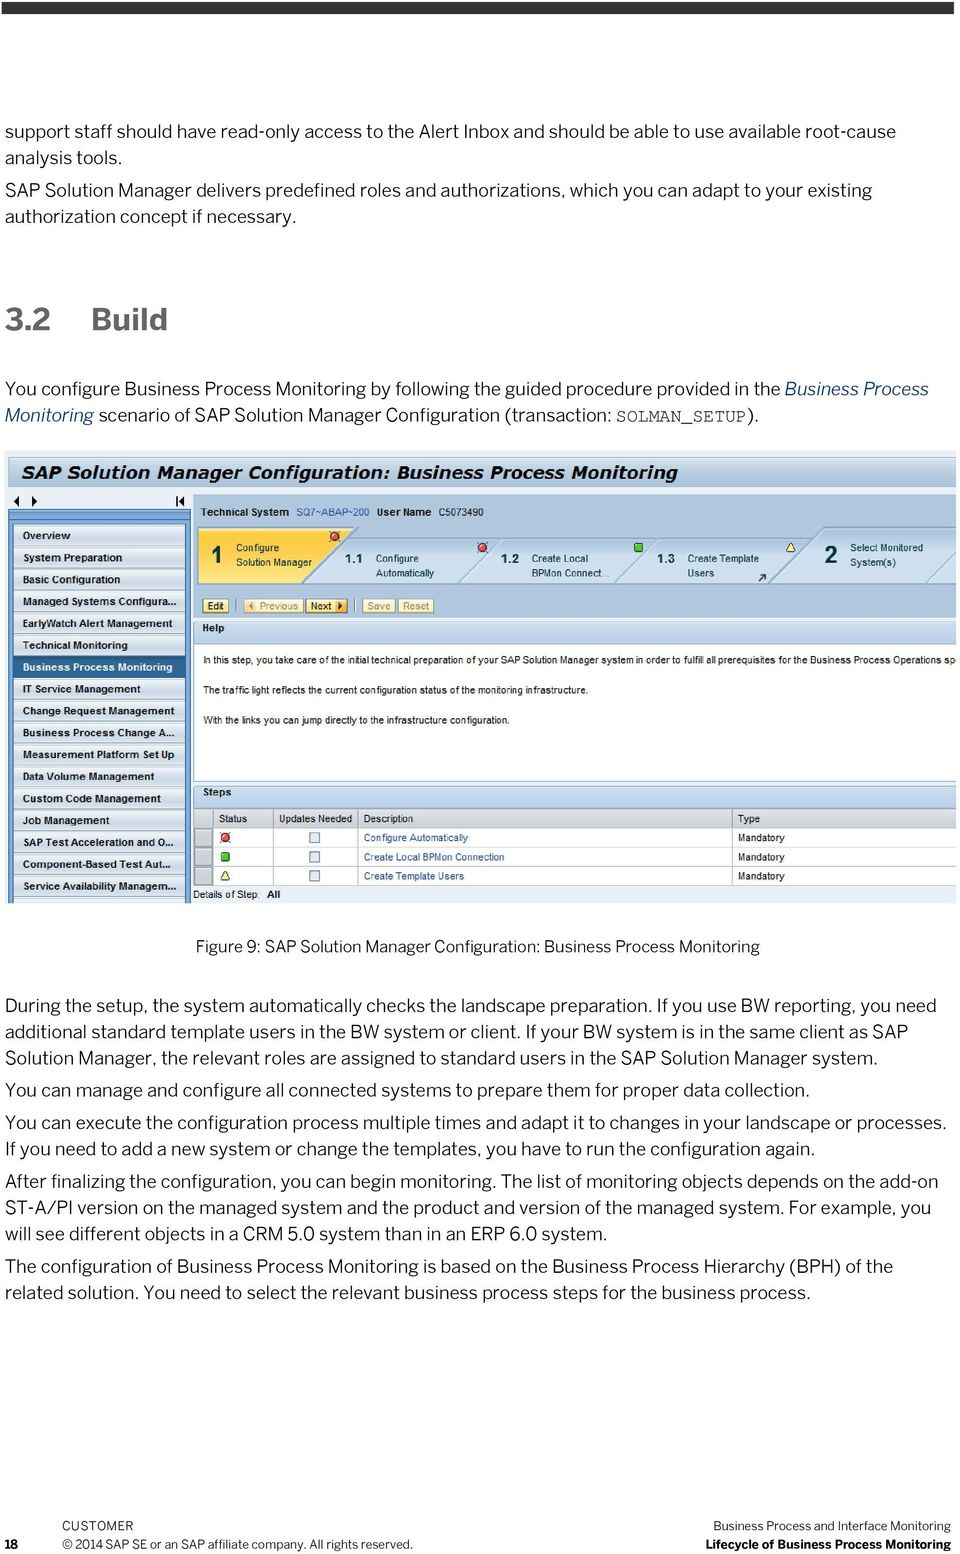 2 Build You configure Business Process Monitoring by following the guided procedure provided in the Business Process Monitoring scenario of SAP Solution Manager Configuration (transaction: